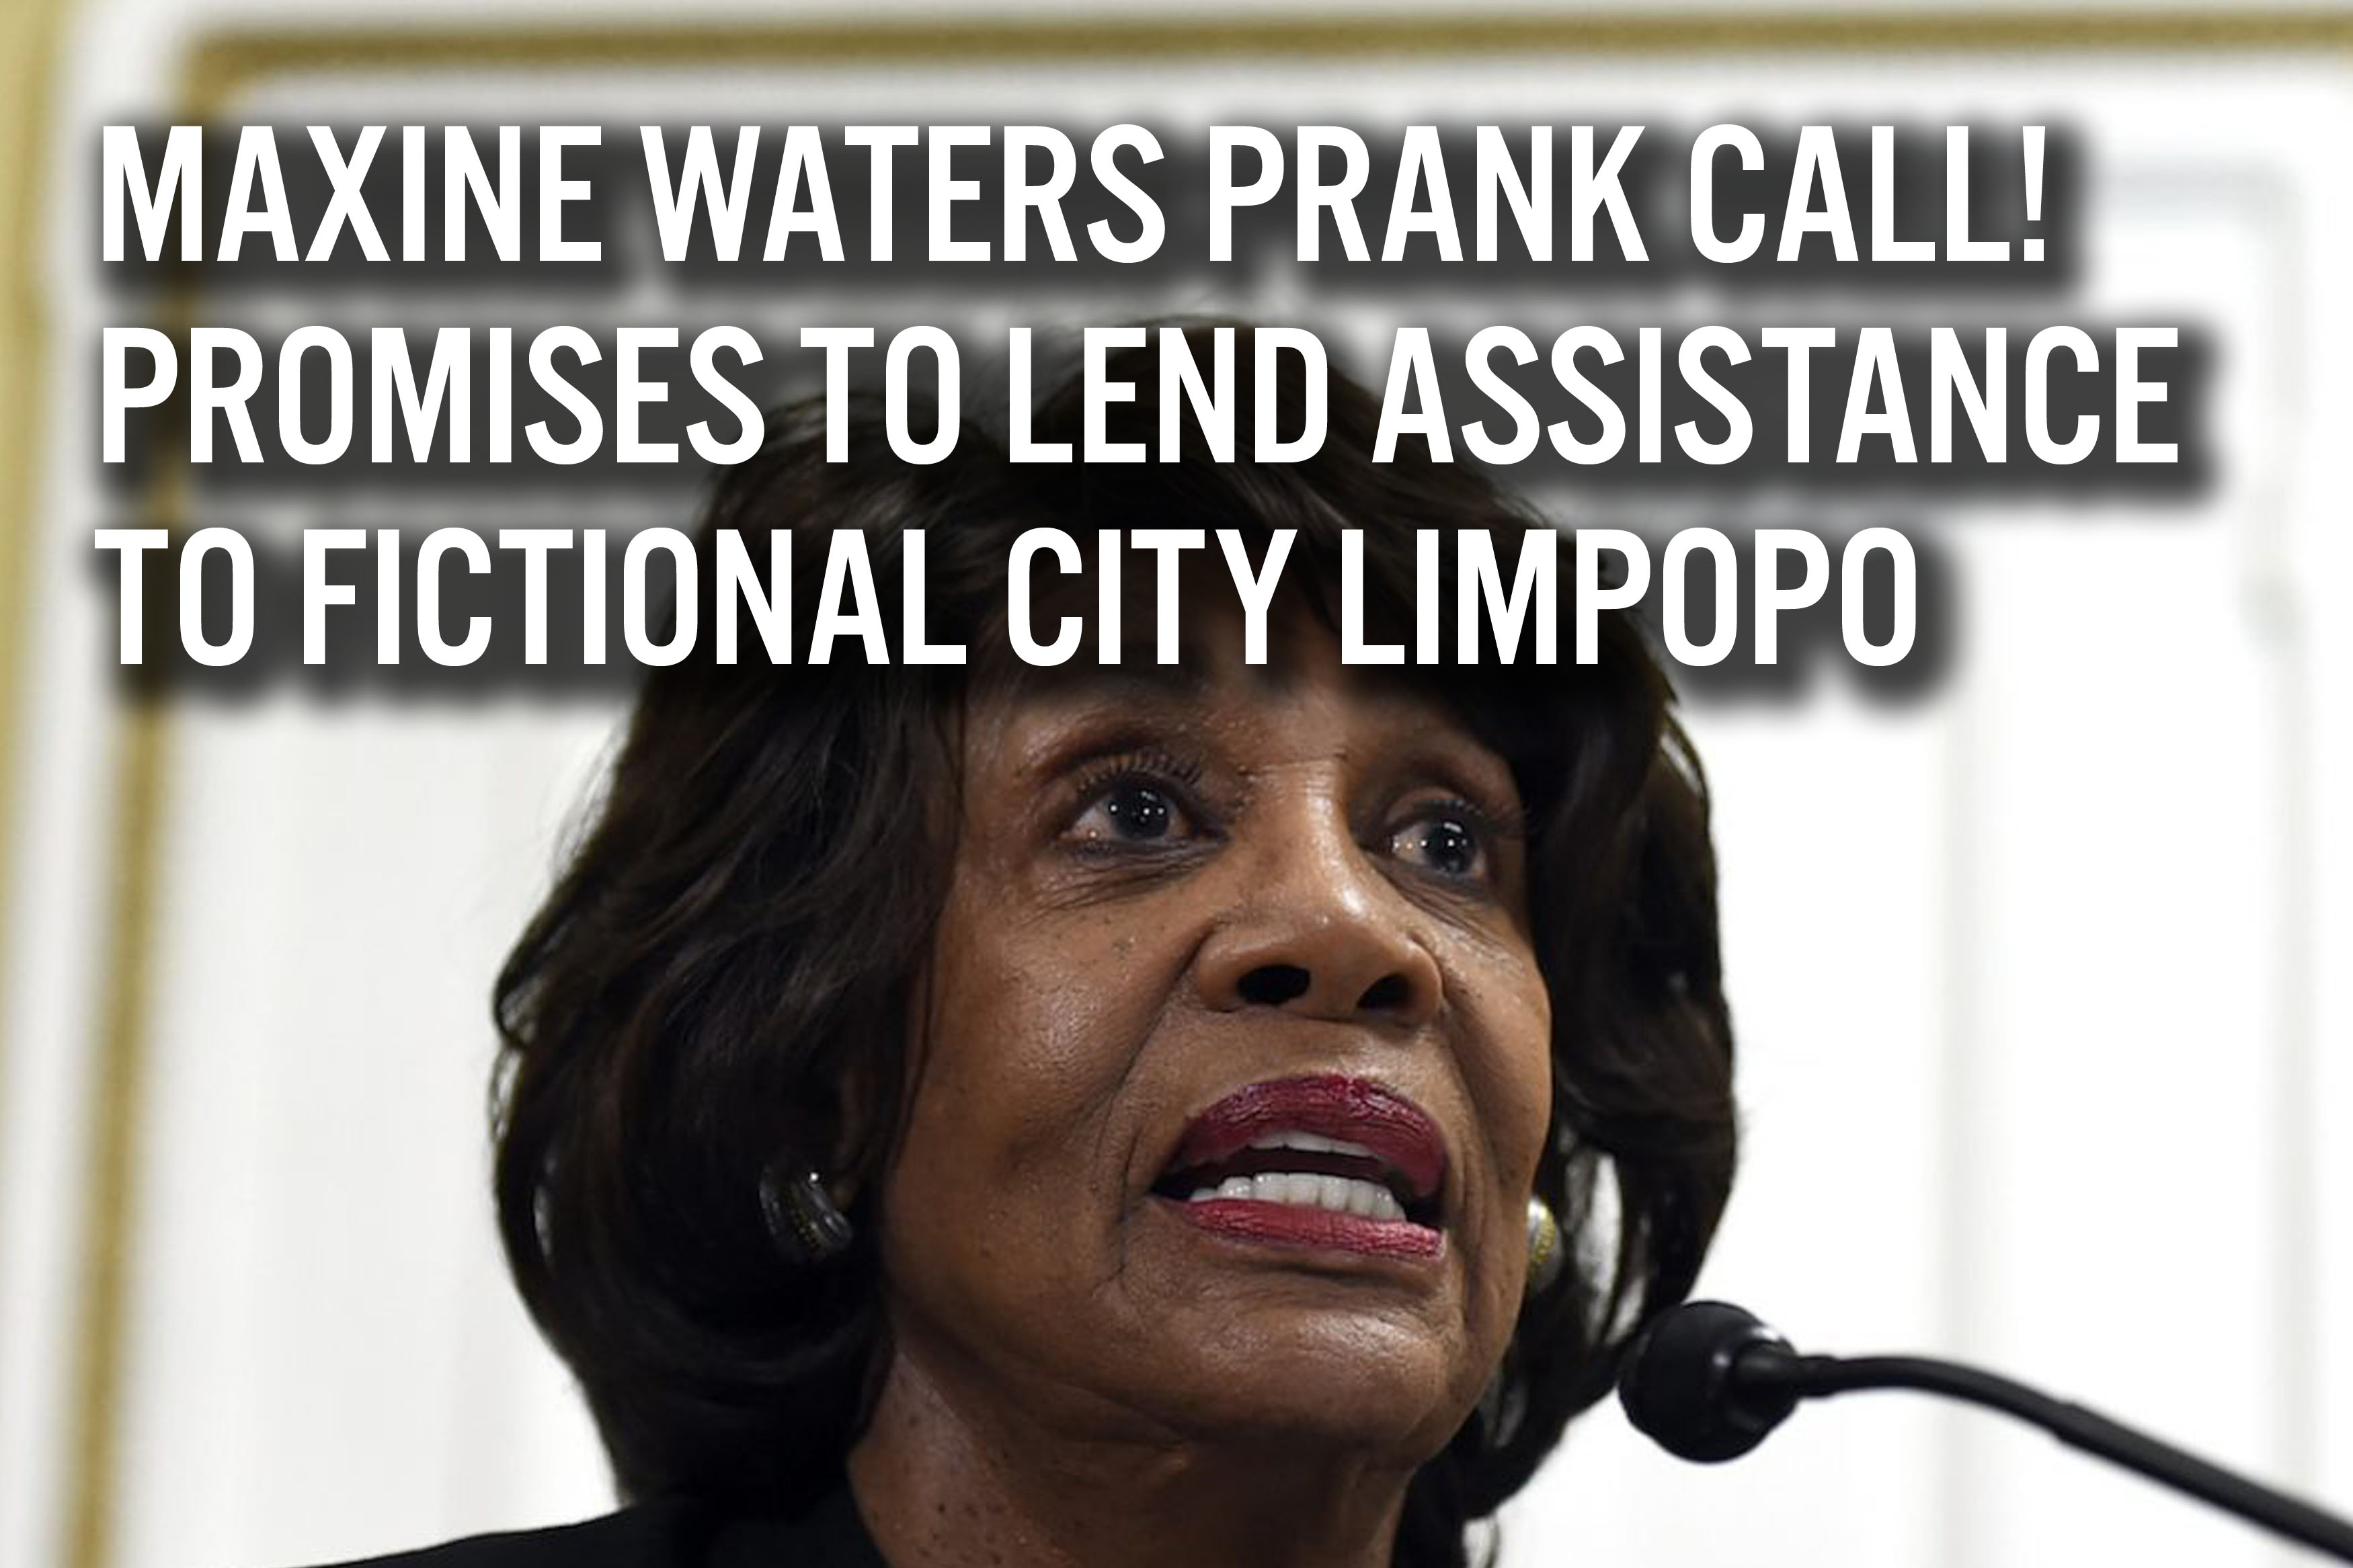 Maxine Waters Prank